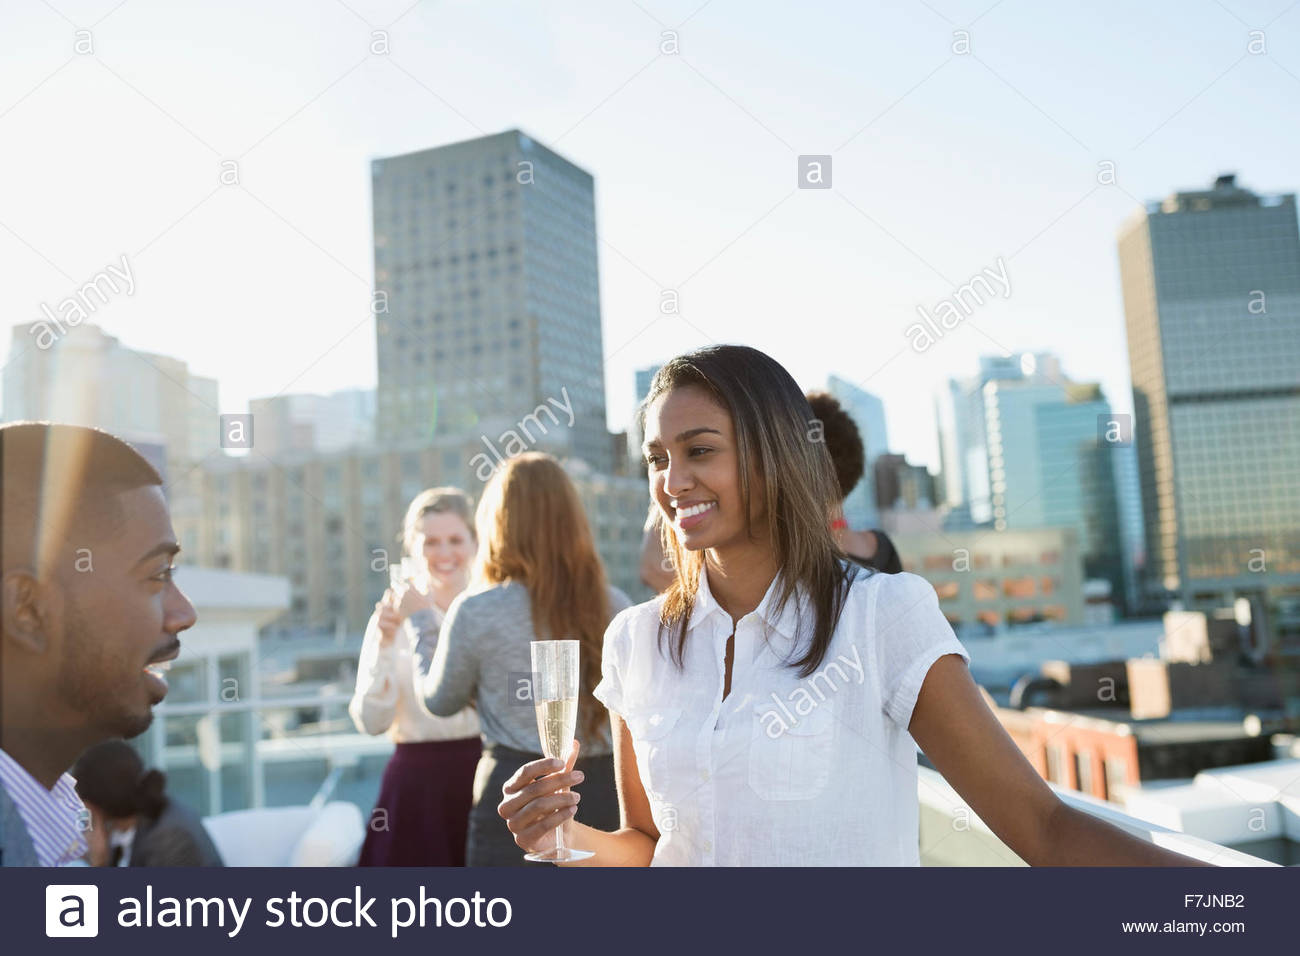 Smiling business people drinking champagne on urban rooftop - Stock Image